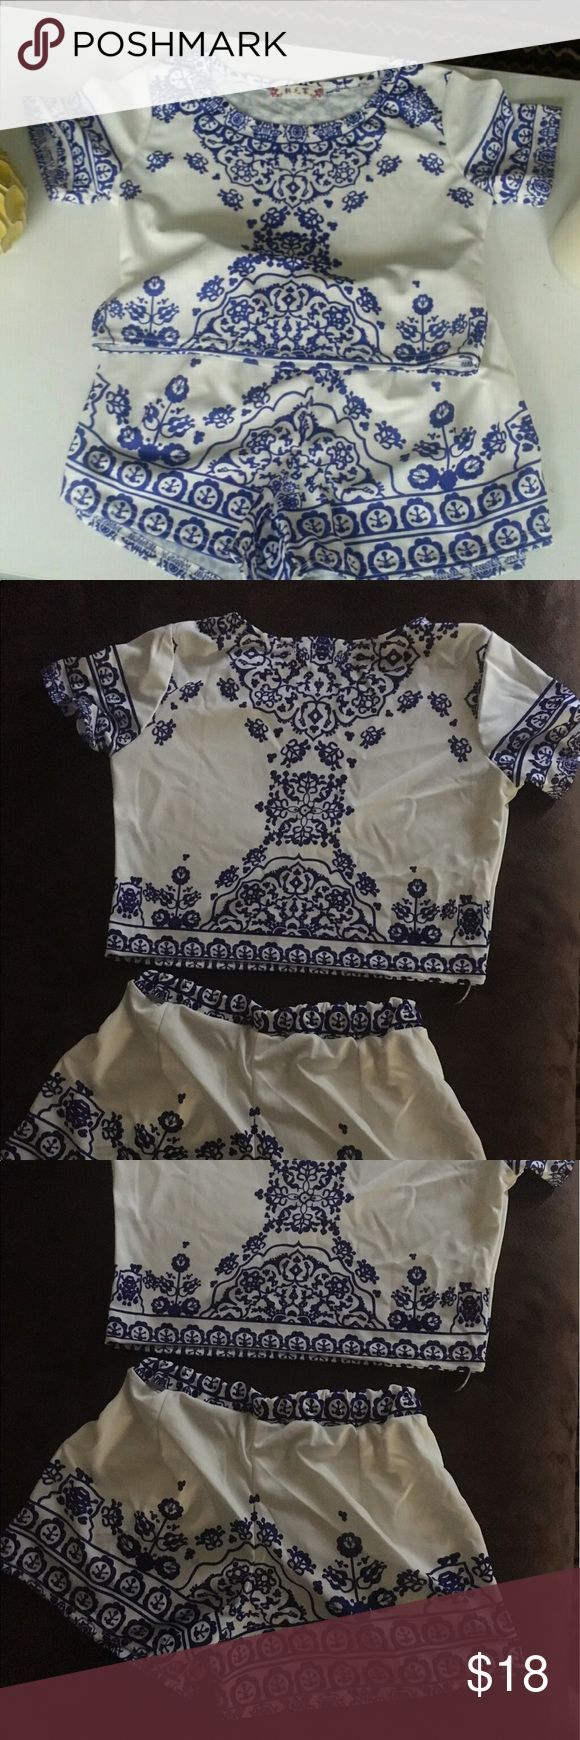 Cute 2 piece Adorable blue and white two piece! Short sleeve top and bottoms with front pockets. Shorts are stretchy. Top tag says Medium Shorts